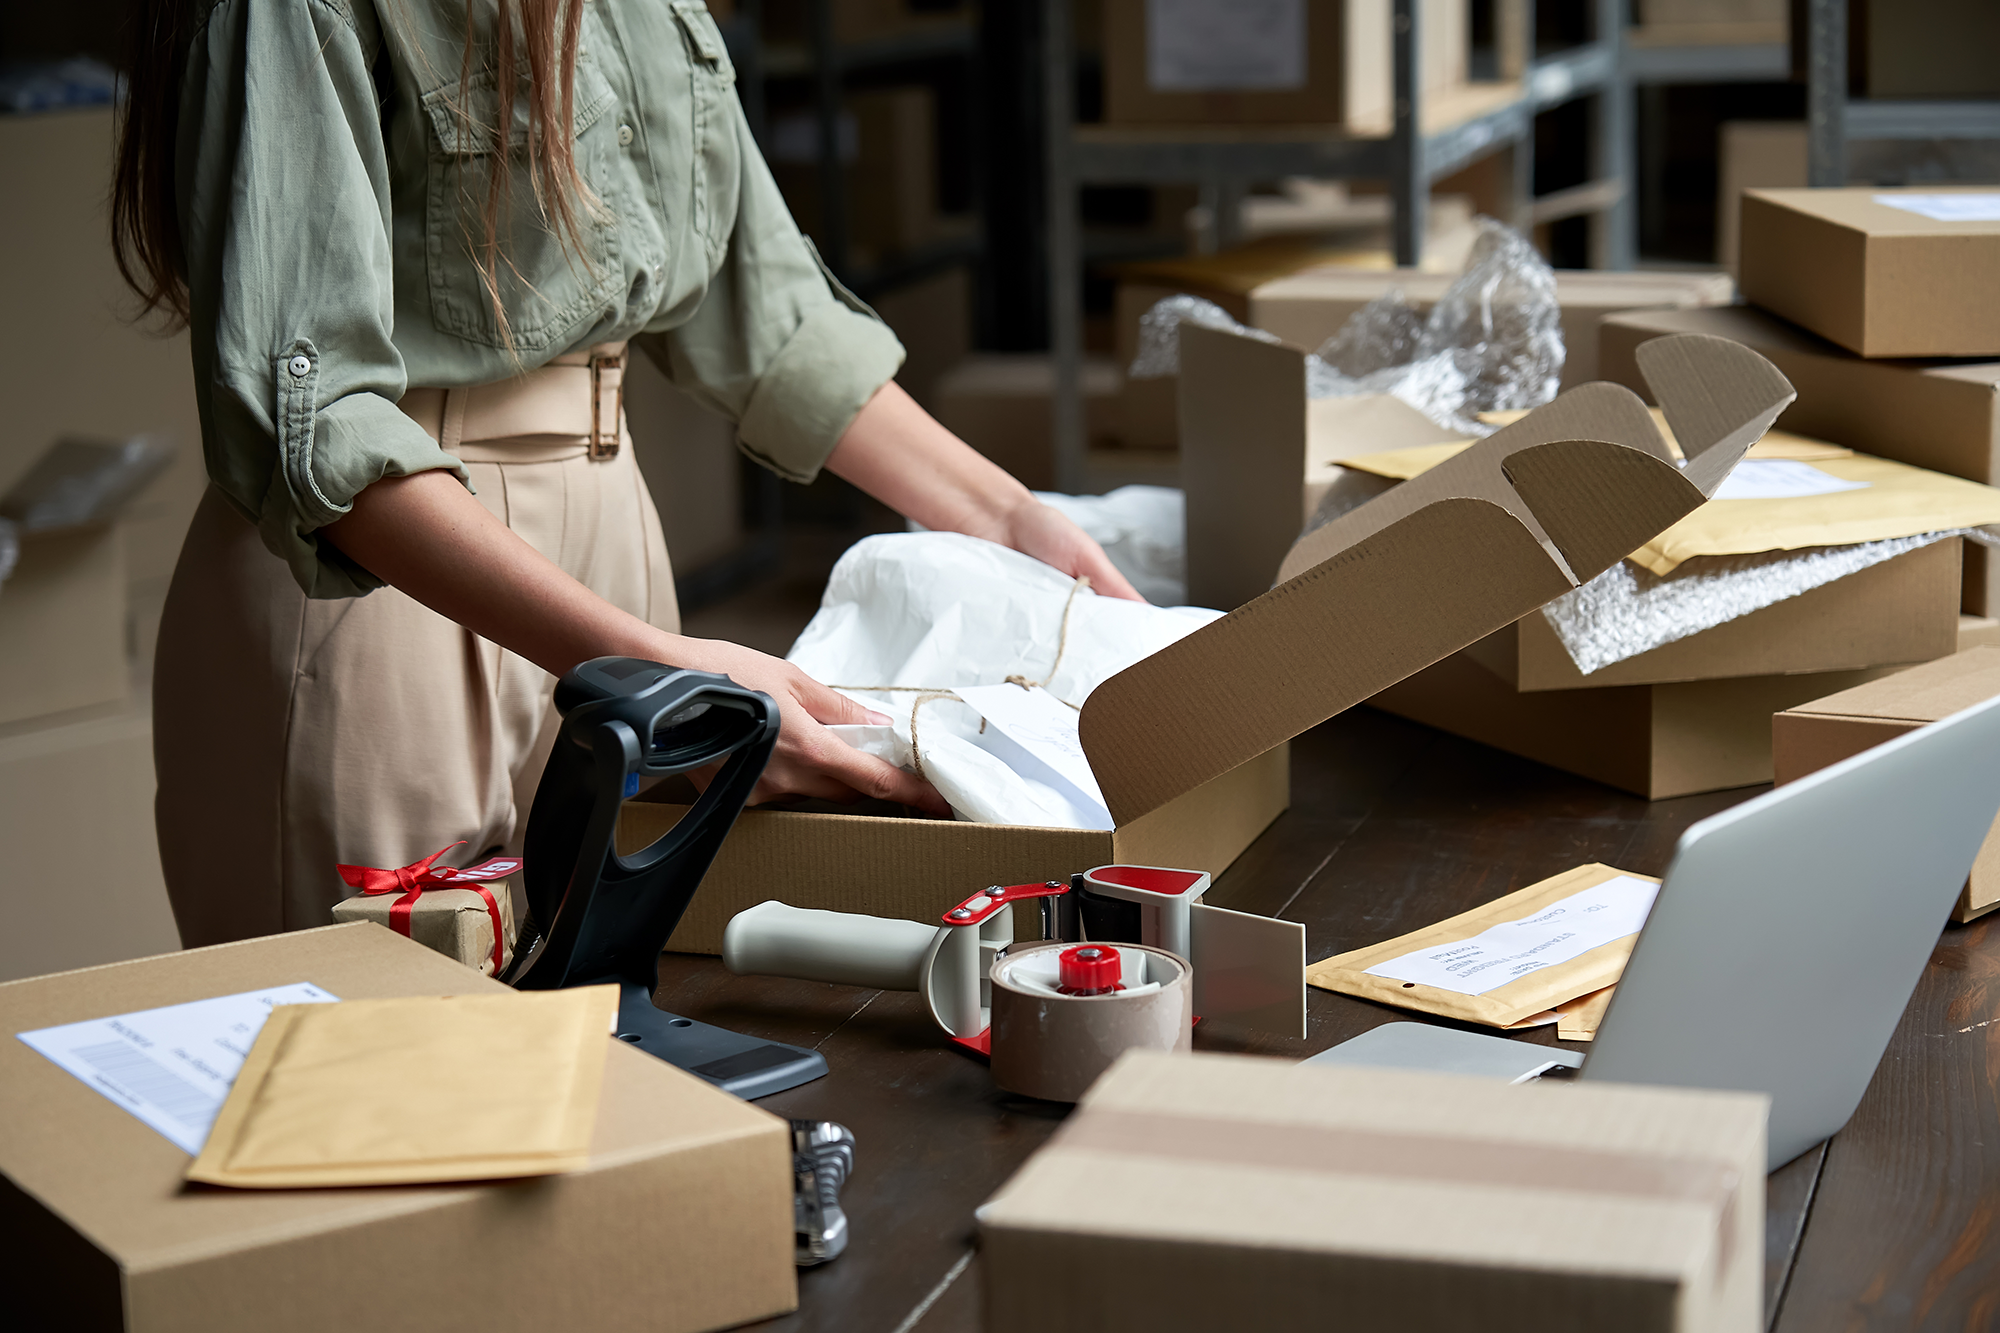 a women uses the best ecommerce platform to run her small business, packing boxes on a table